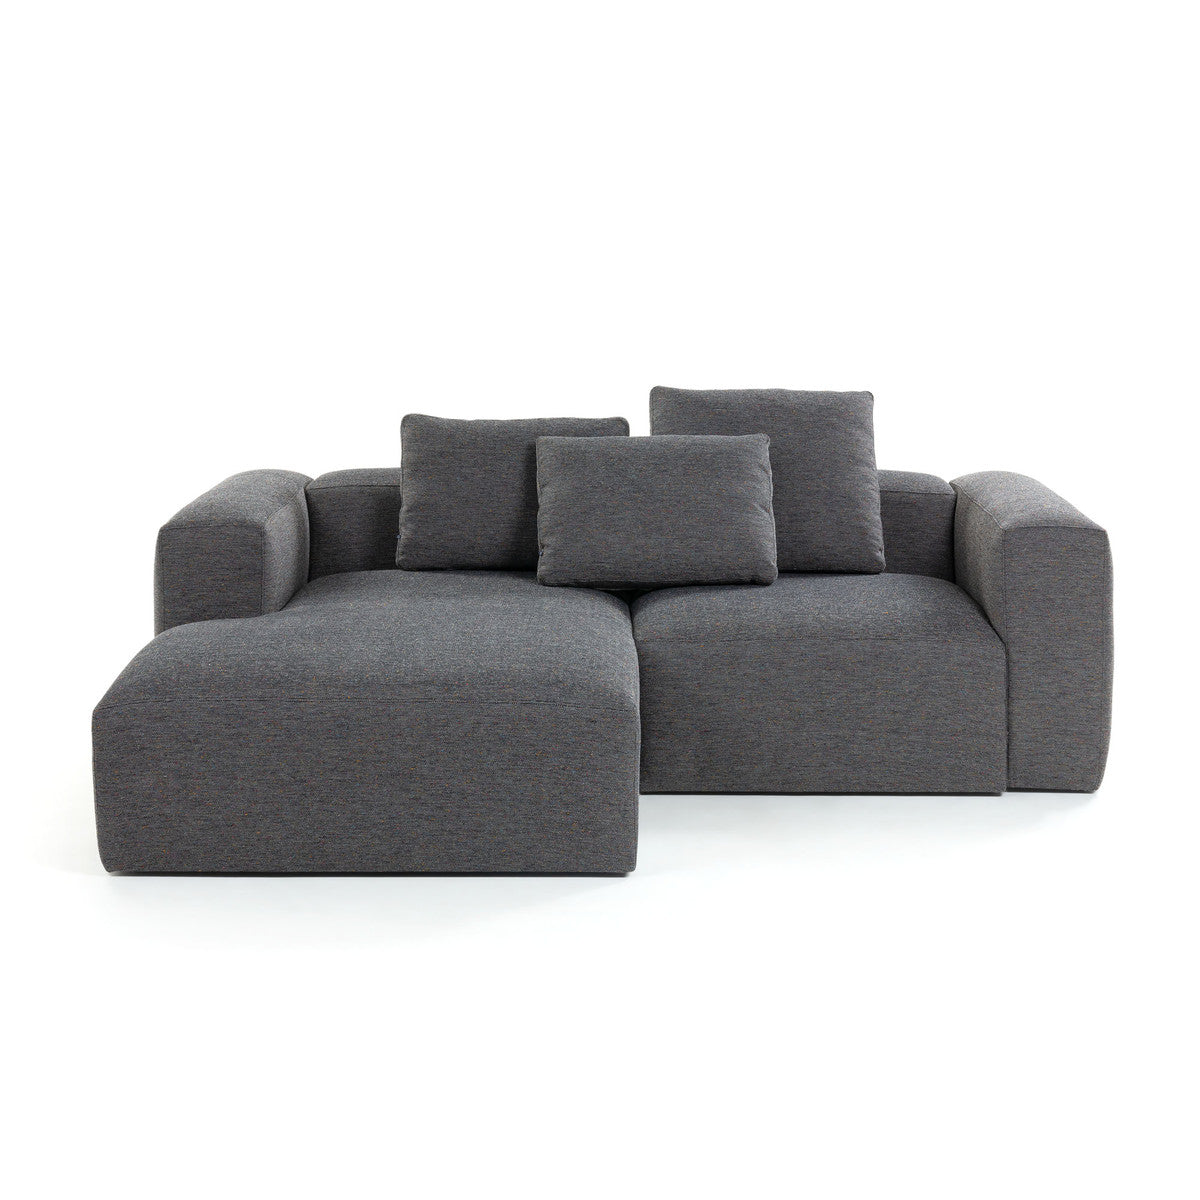 Cube Sofa Backrest Cushion 50 x 70cm in Dark Grey Fabric